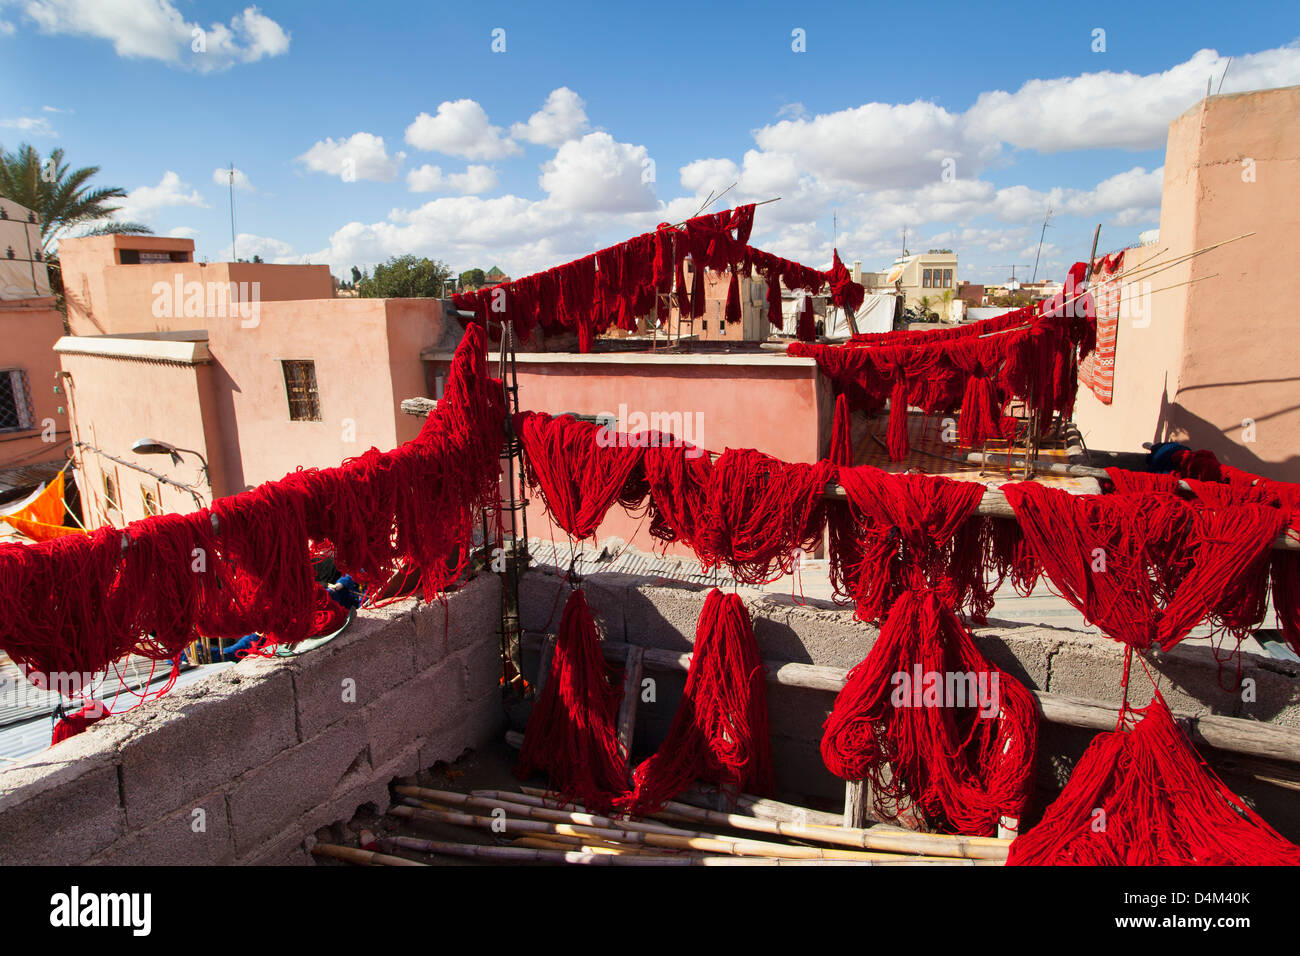 Dyed wool drying on lines - Stock Image